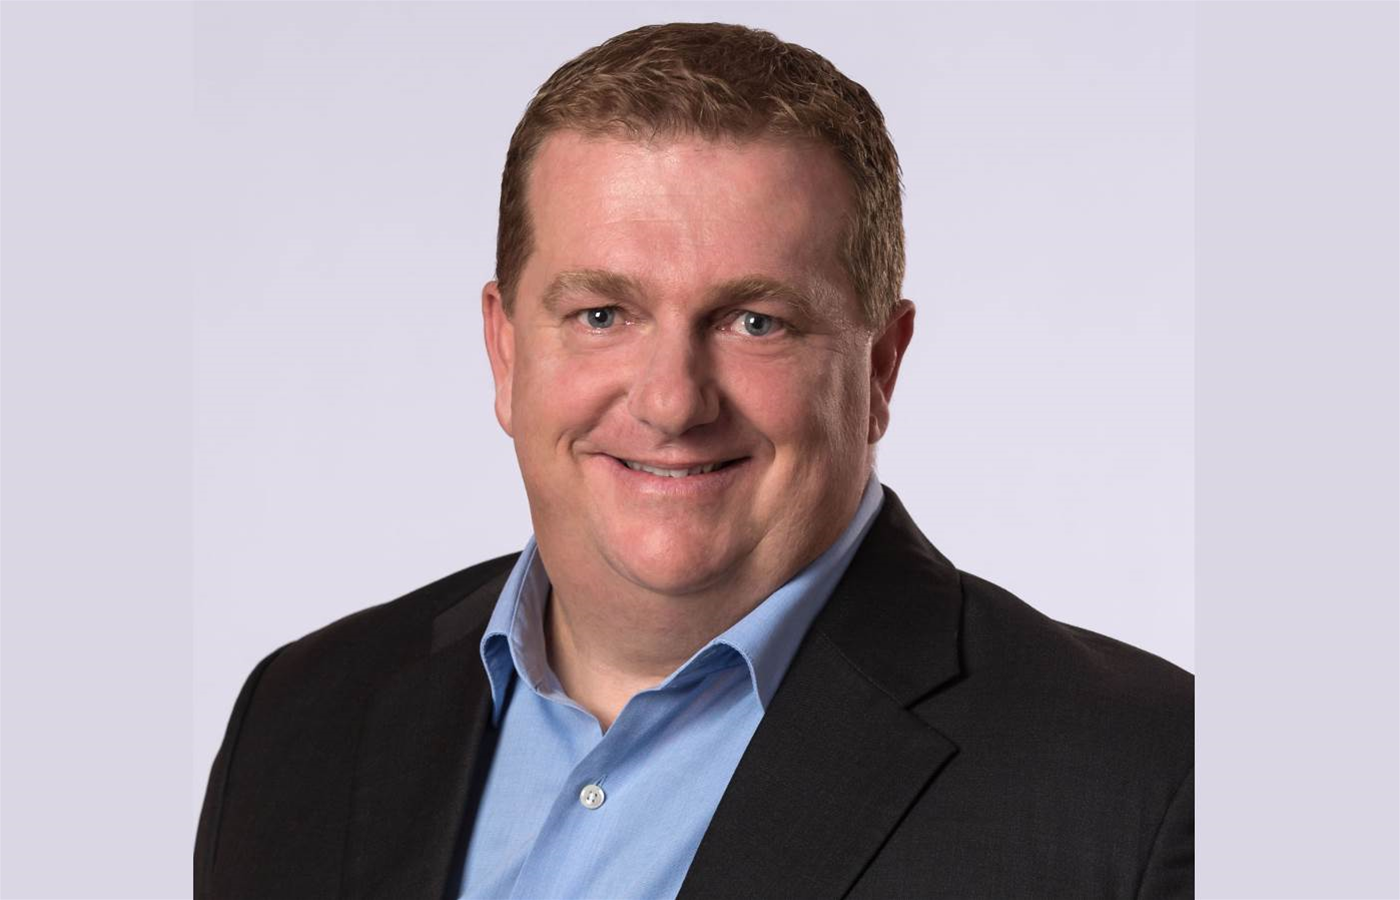 Hitachi Vantara appoints Mark Ablett to global leadership role